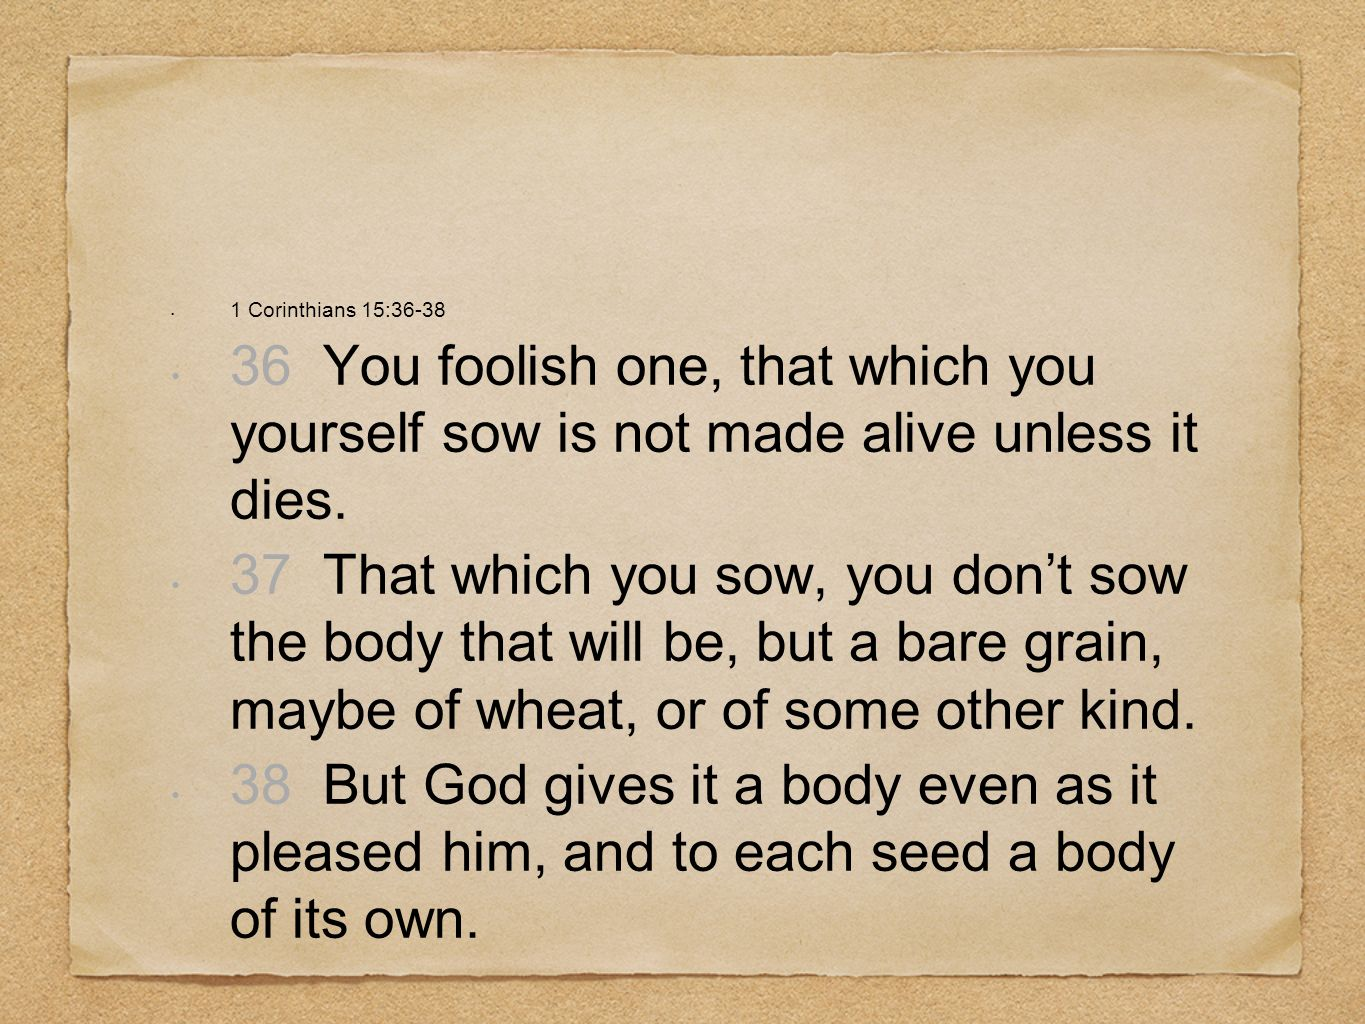 1 Corinthians 15: You foolish one, that which you yourself sow is not made alive unless it dies.